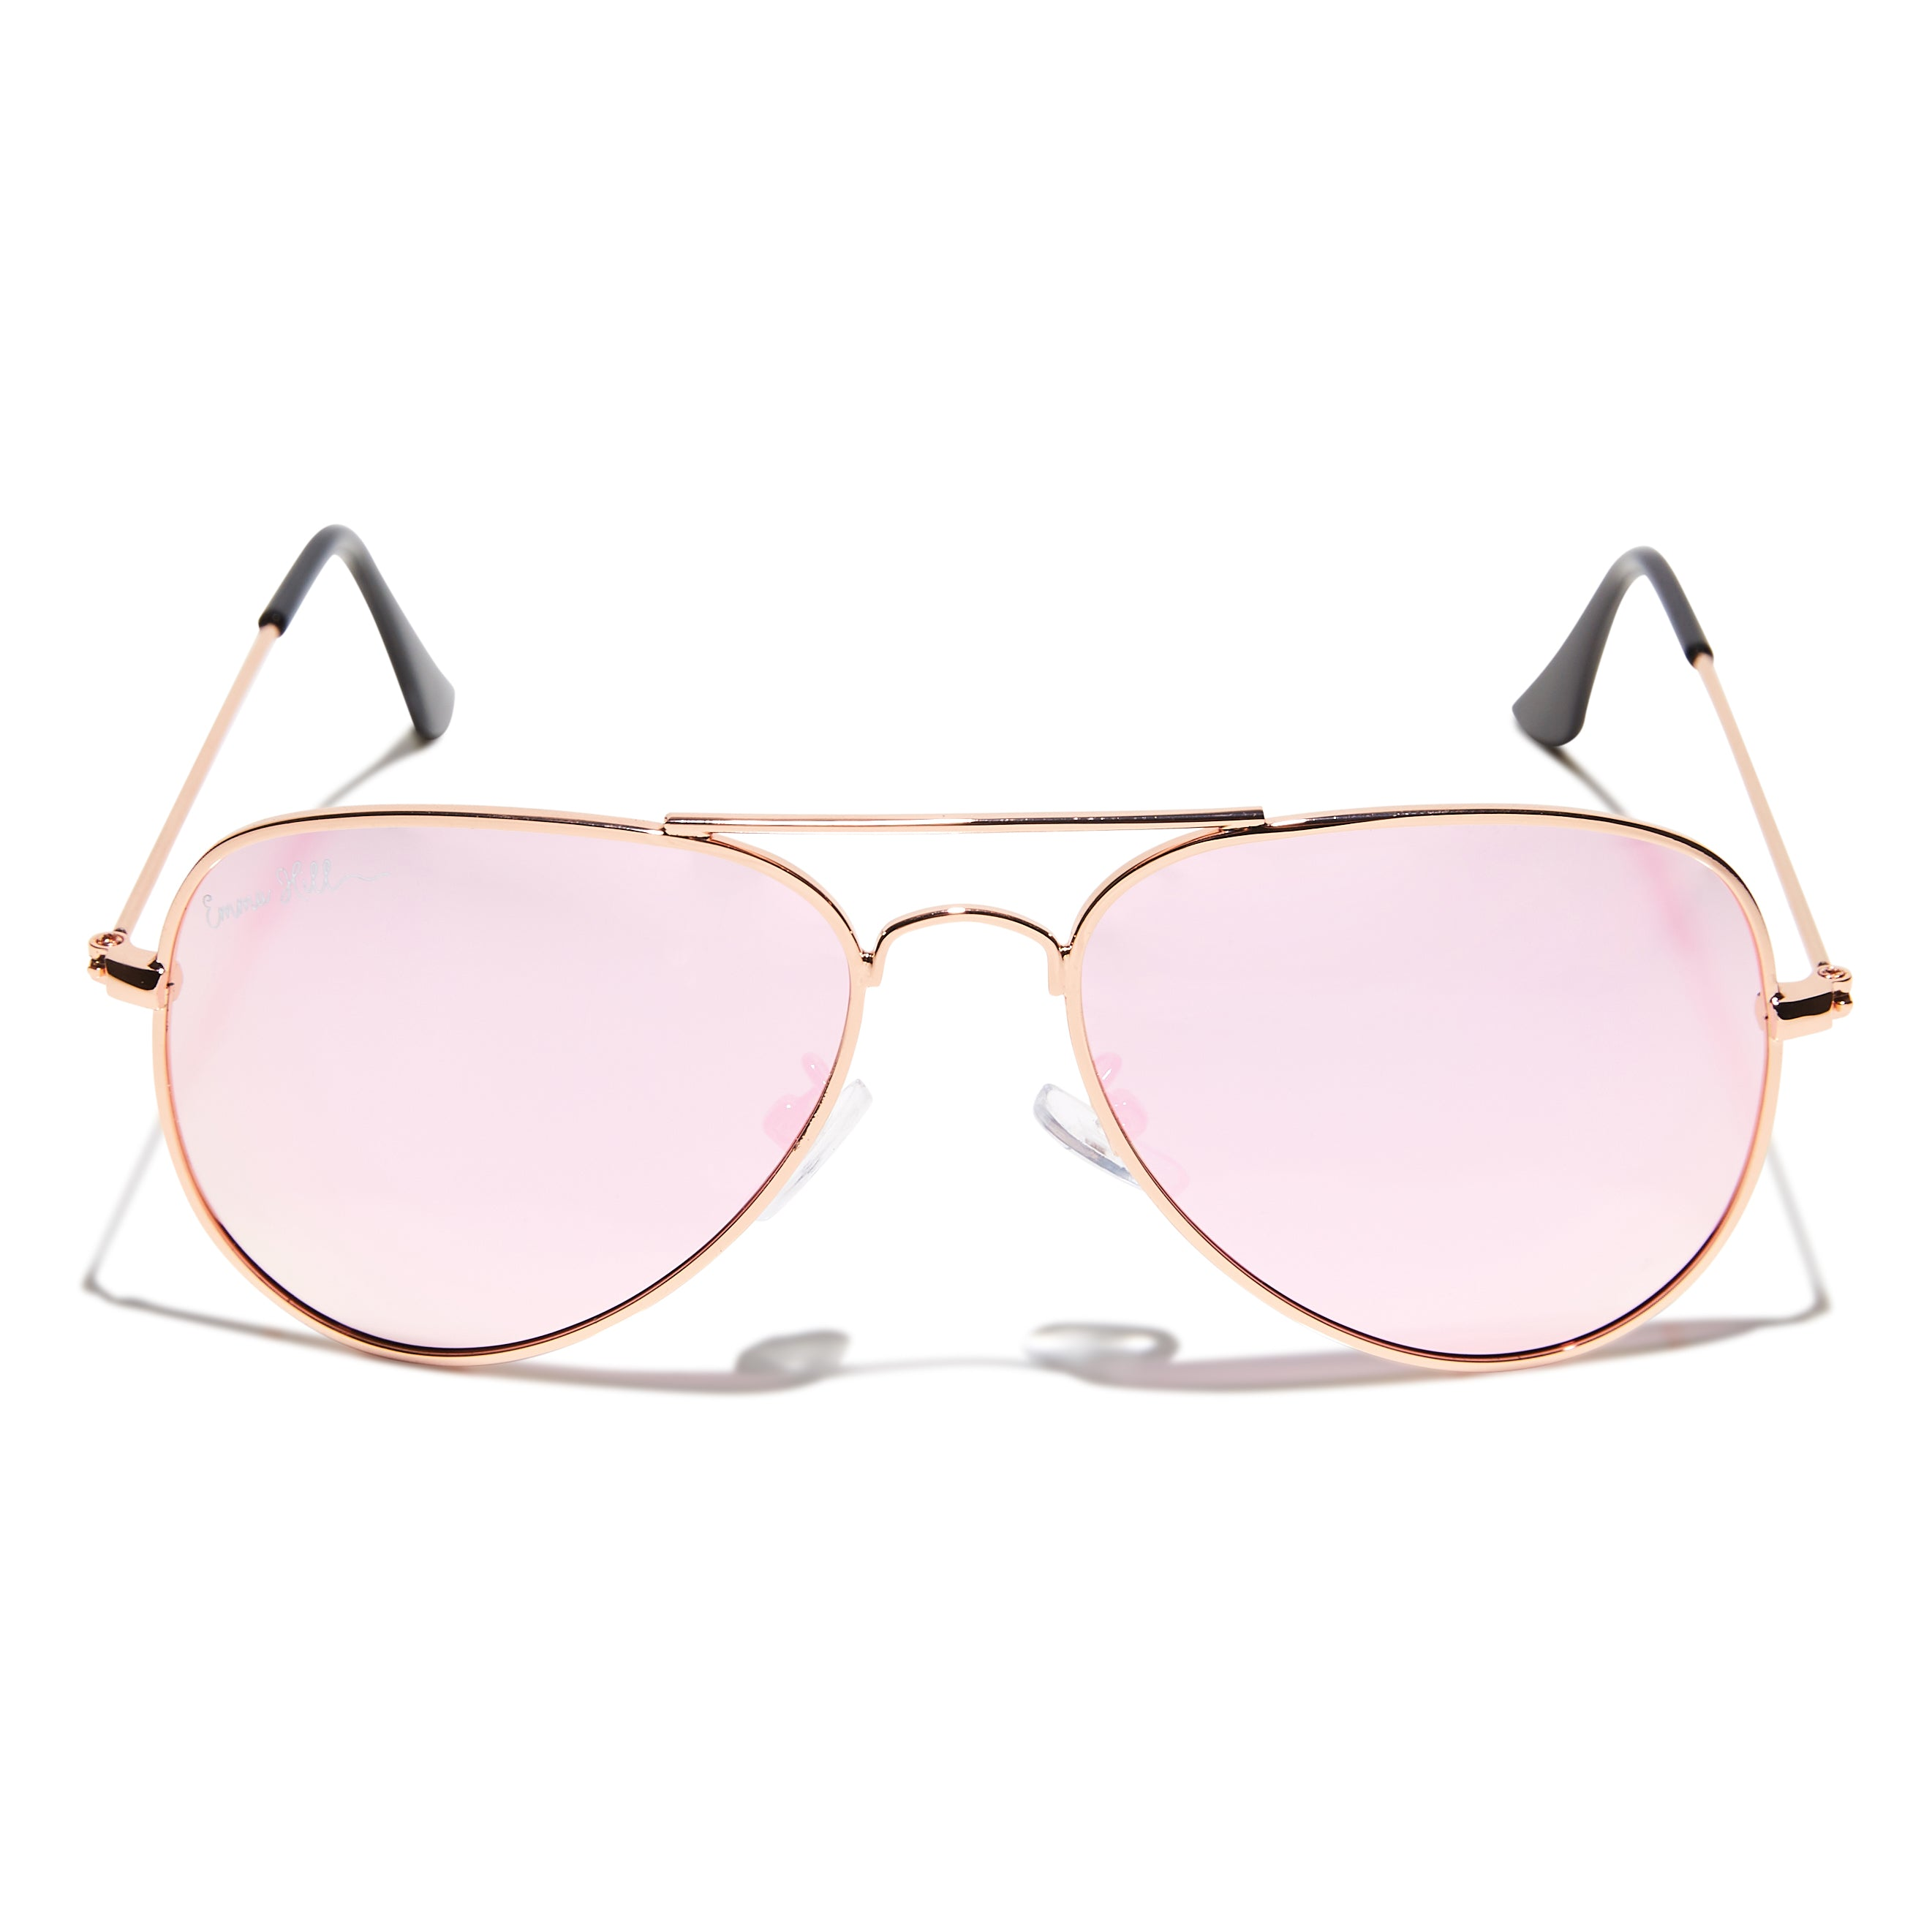 Jaz Shades - Rose Gold + Pink Lens